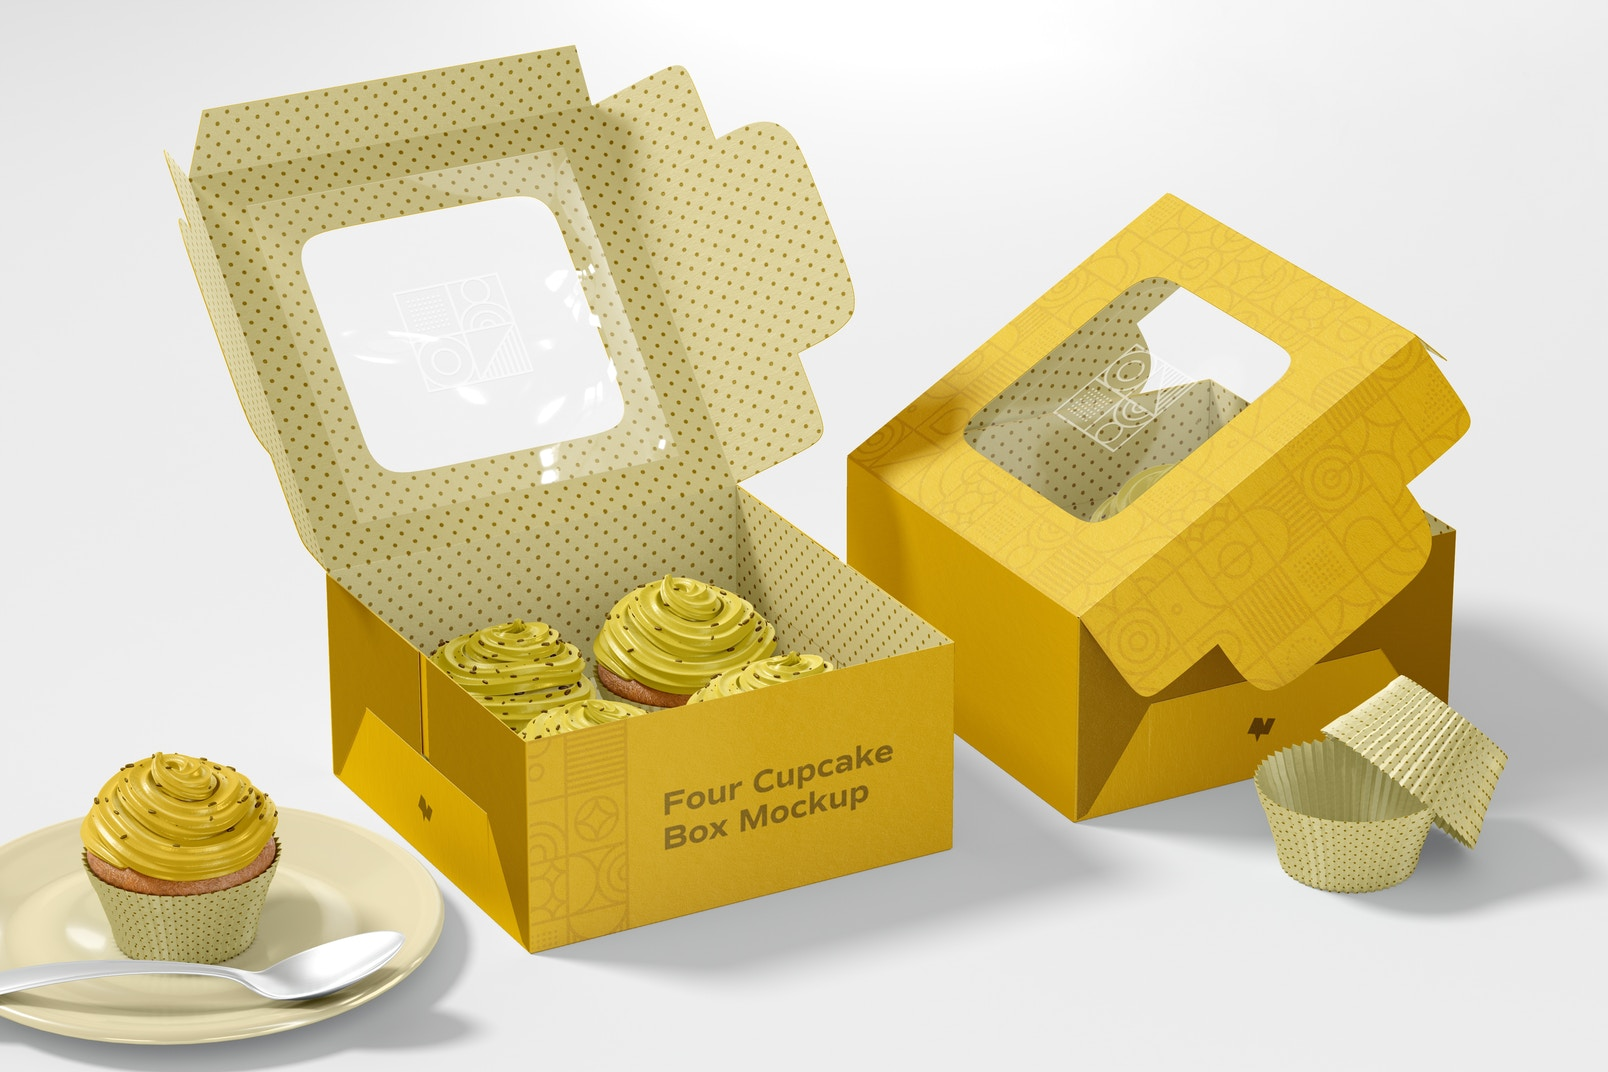 Four Cupcakes Boxes Mockup, Opened